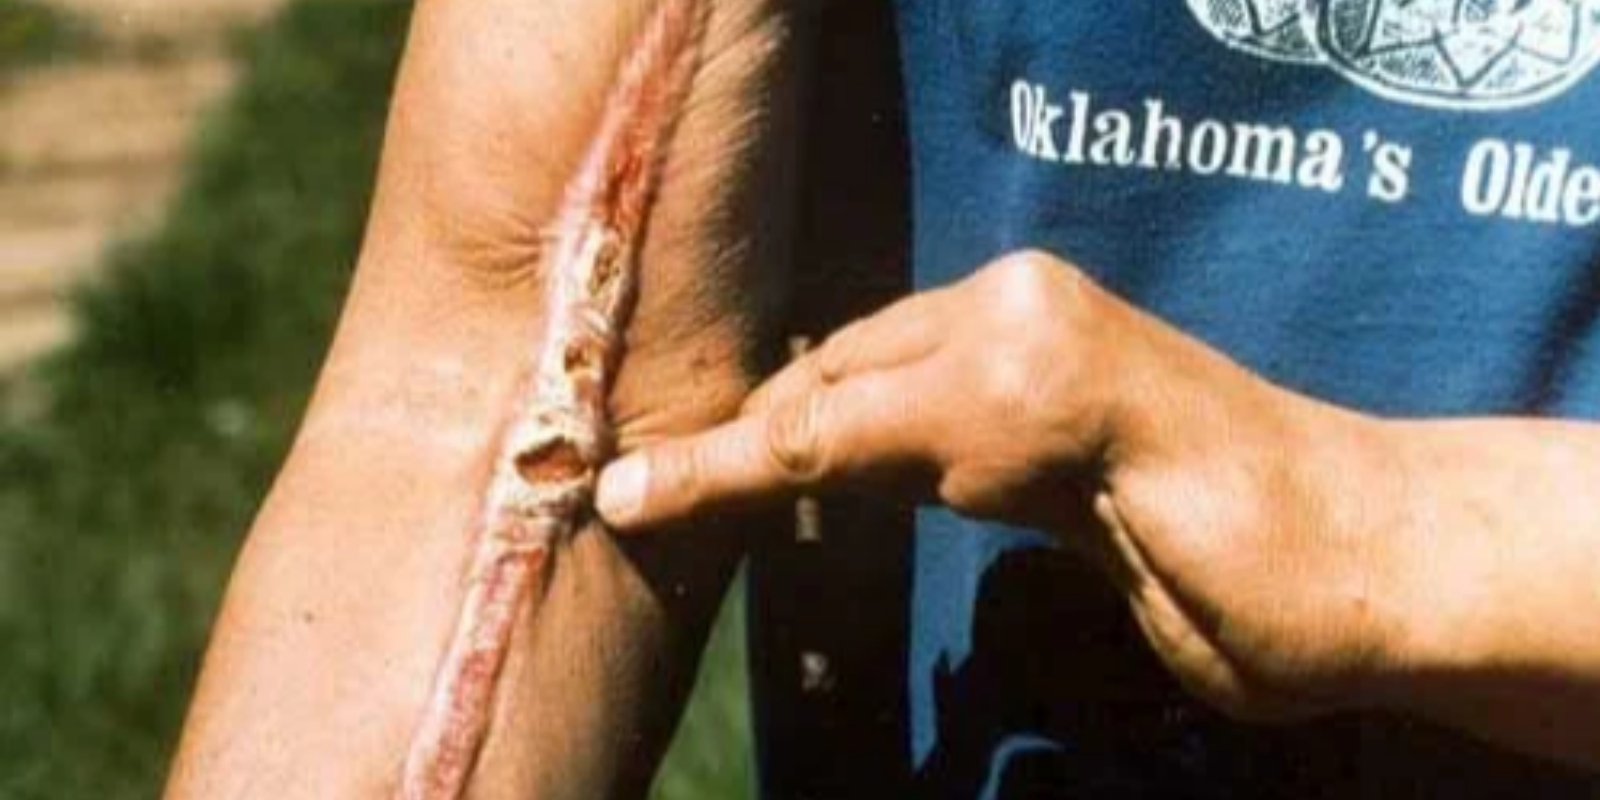 man shows snake bite on arm; missing a couple fingers on left hand